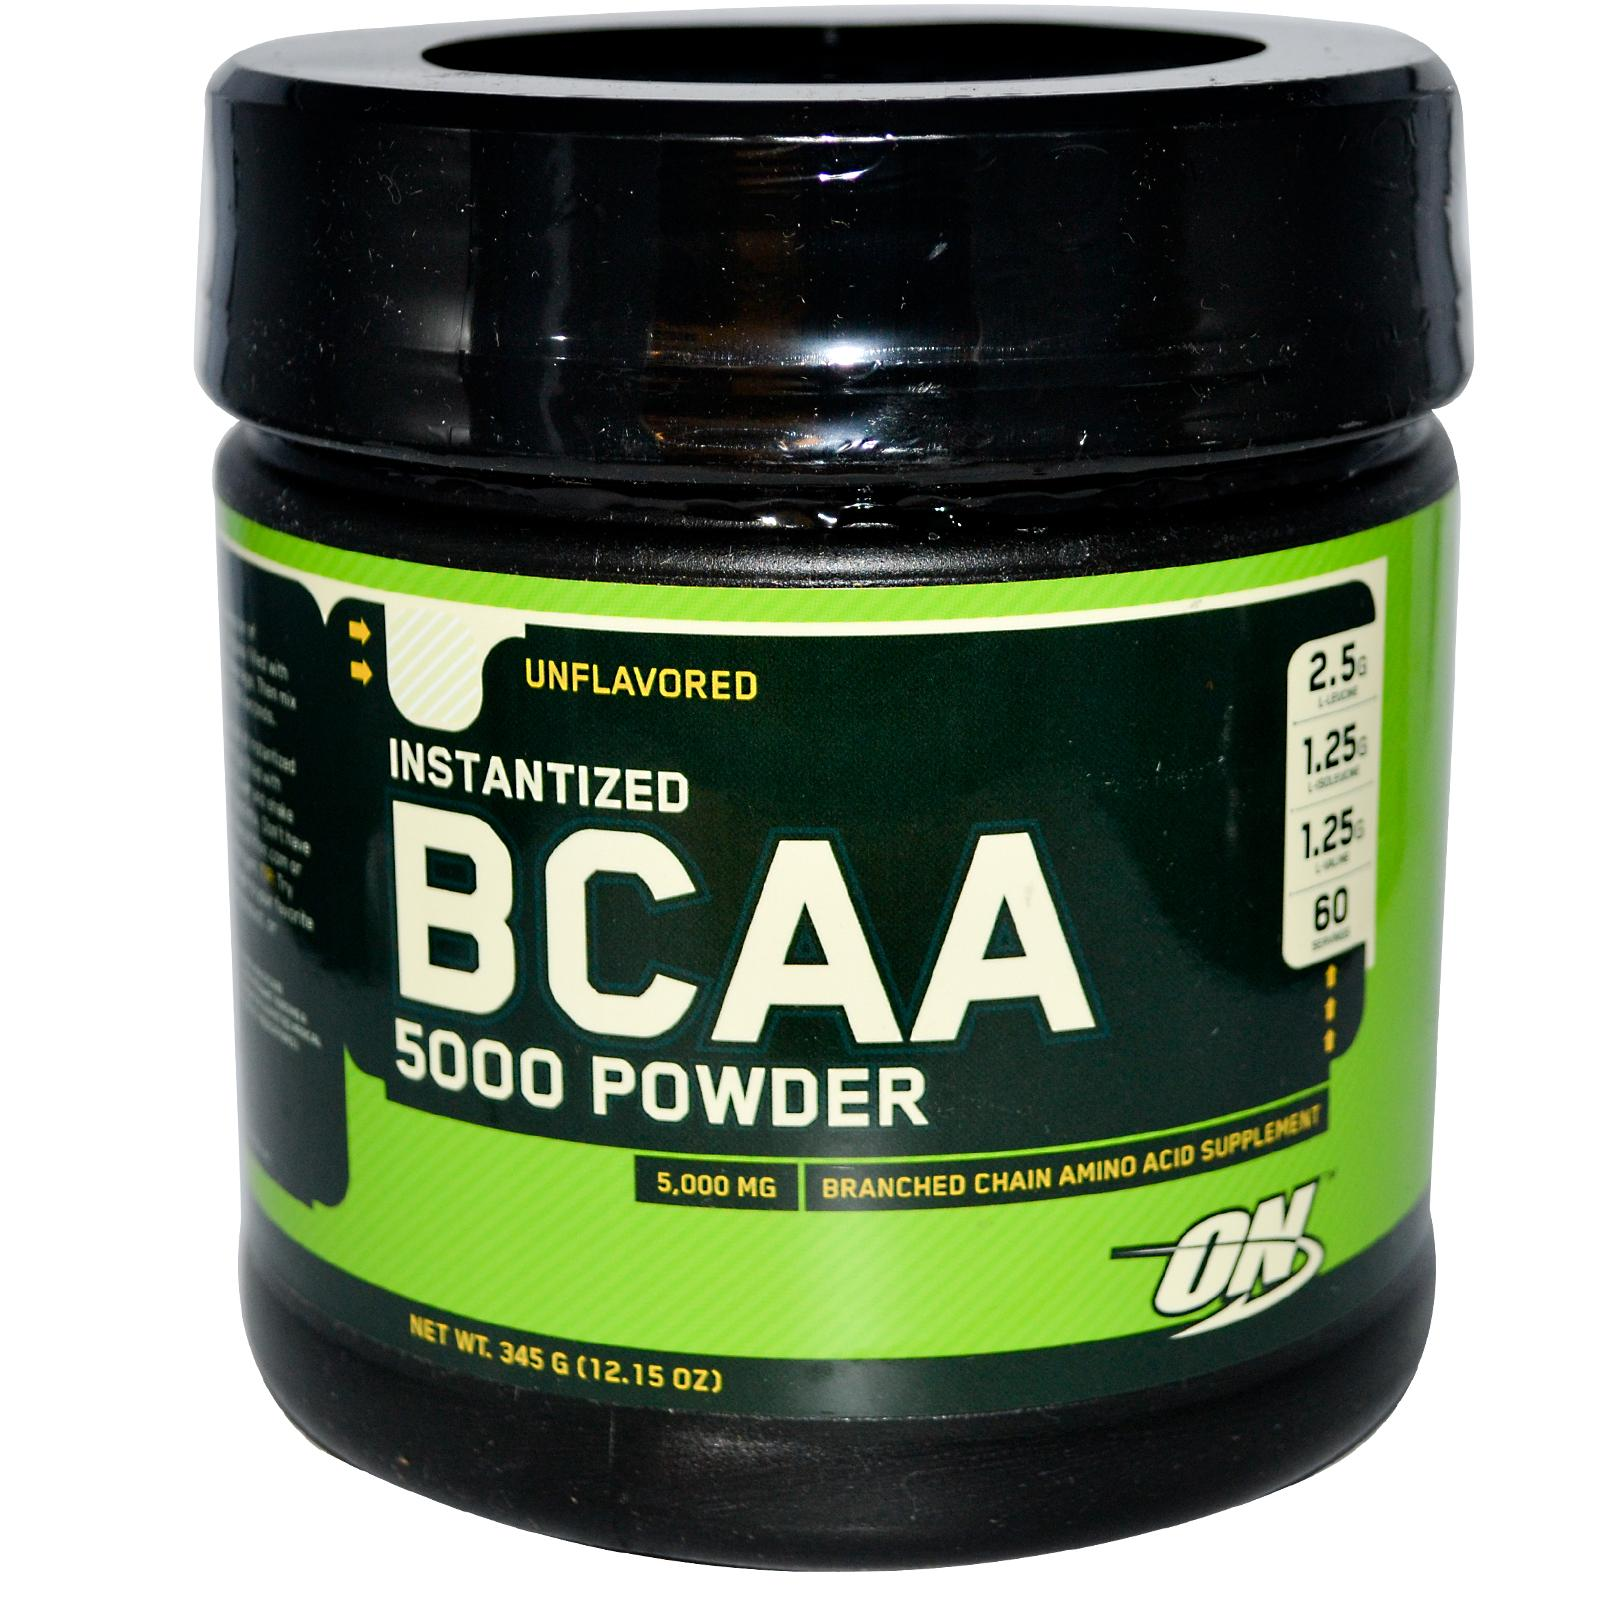 5g BCAA Pre-Workout Equals Less Muscle Soreness